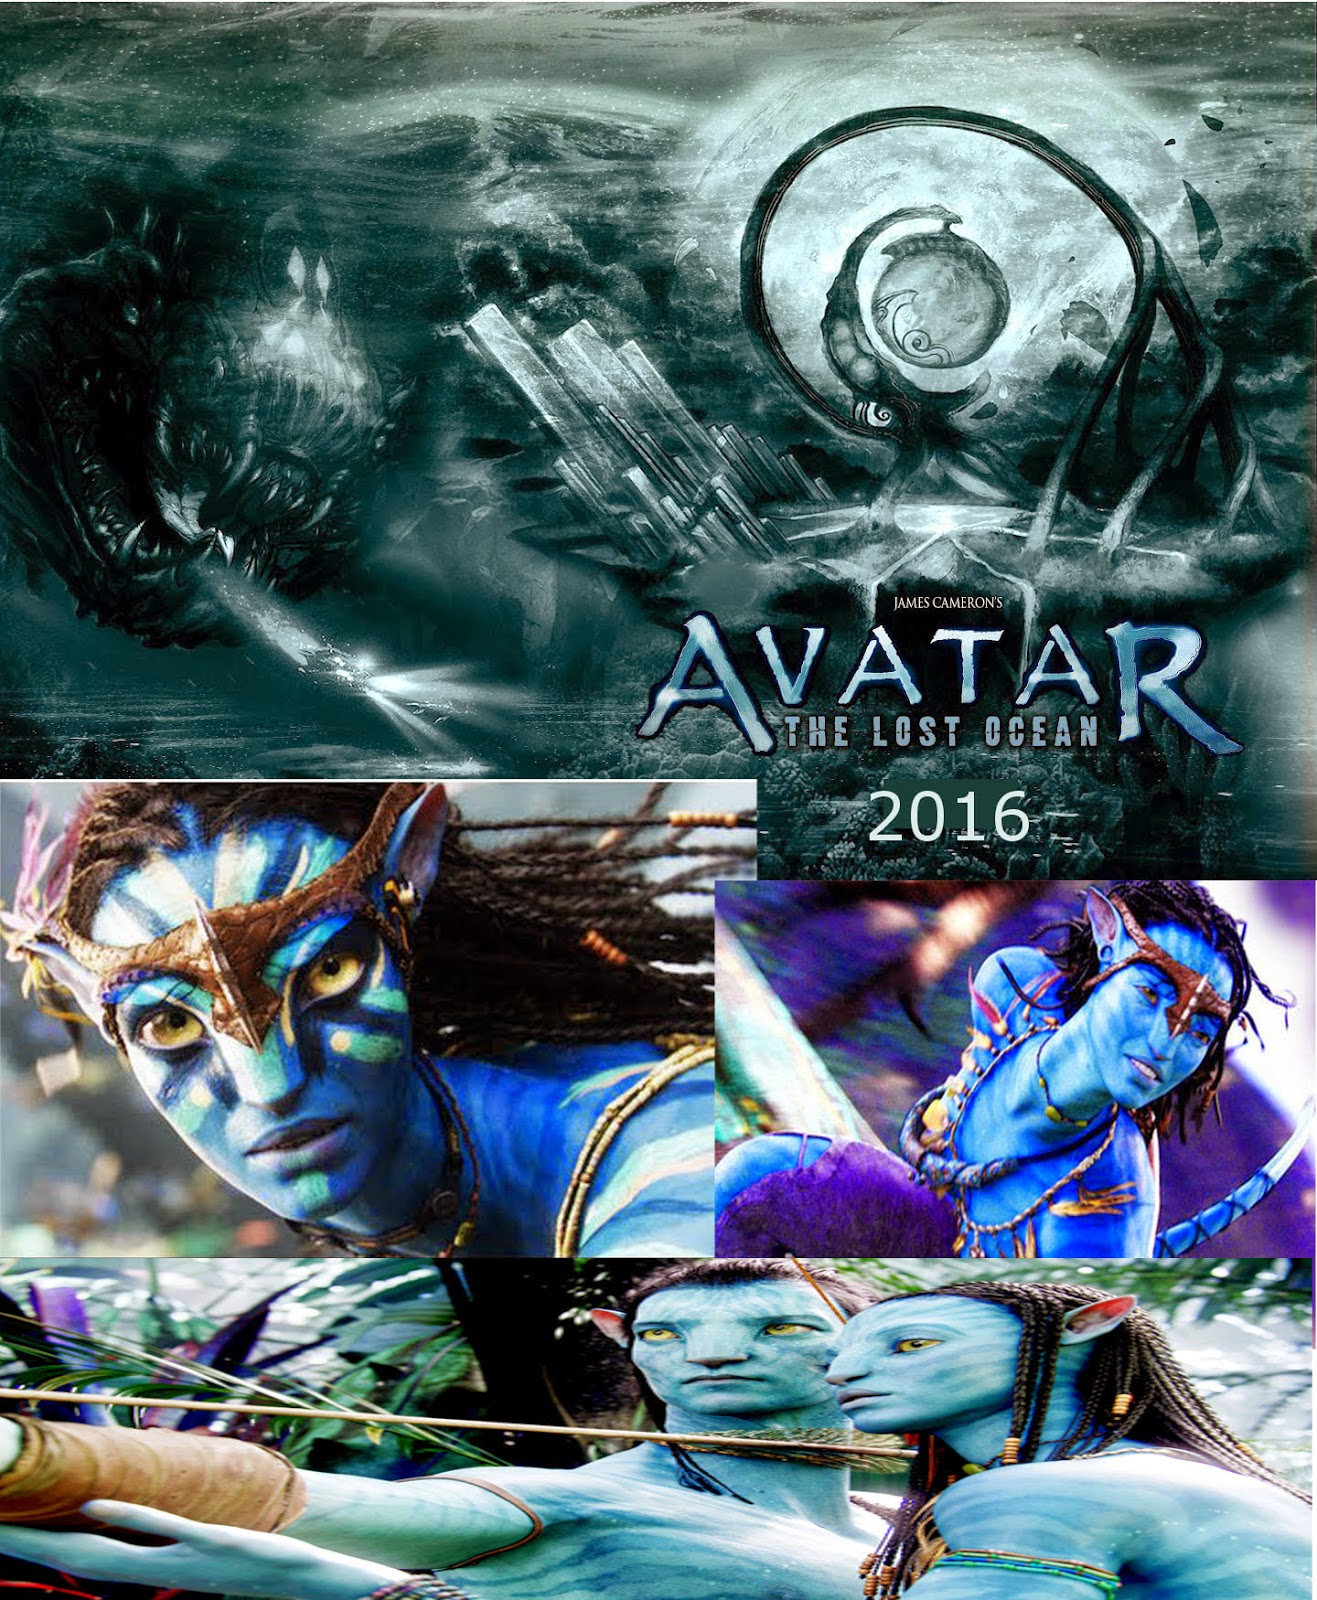 Avatar Sequel: HollywooD UpcominG MovieS: July 2014